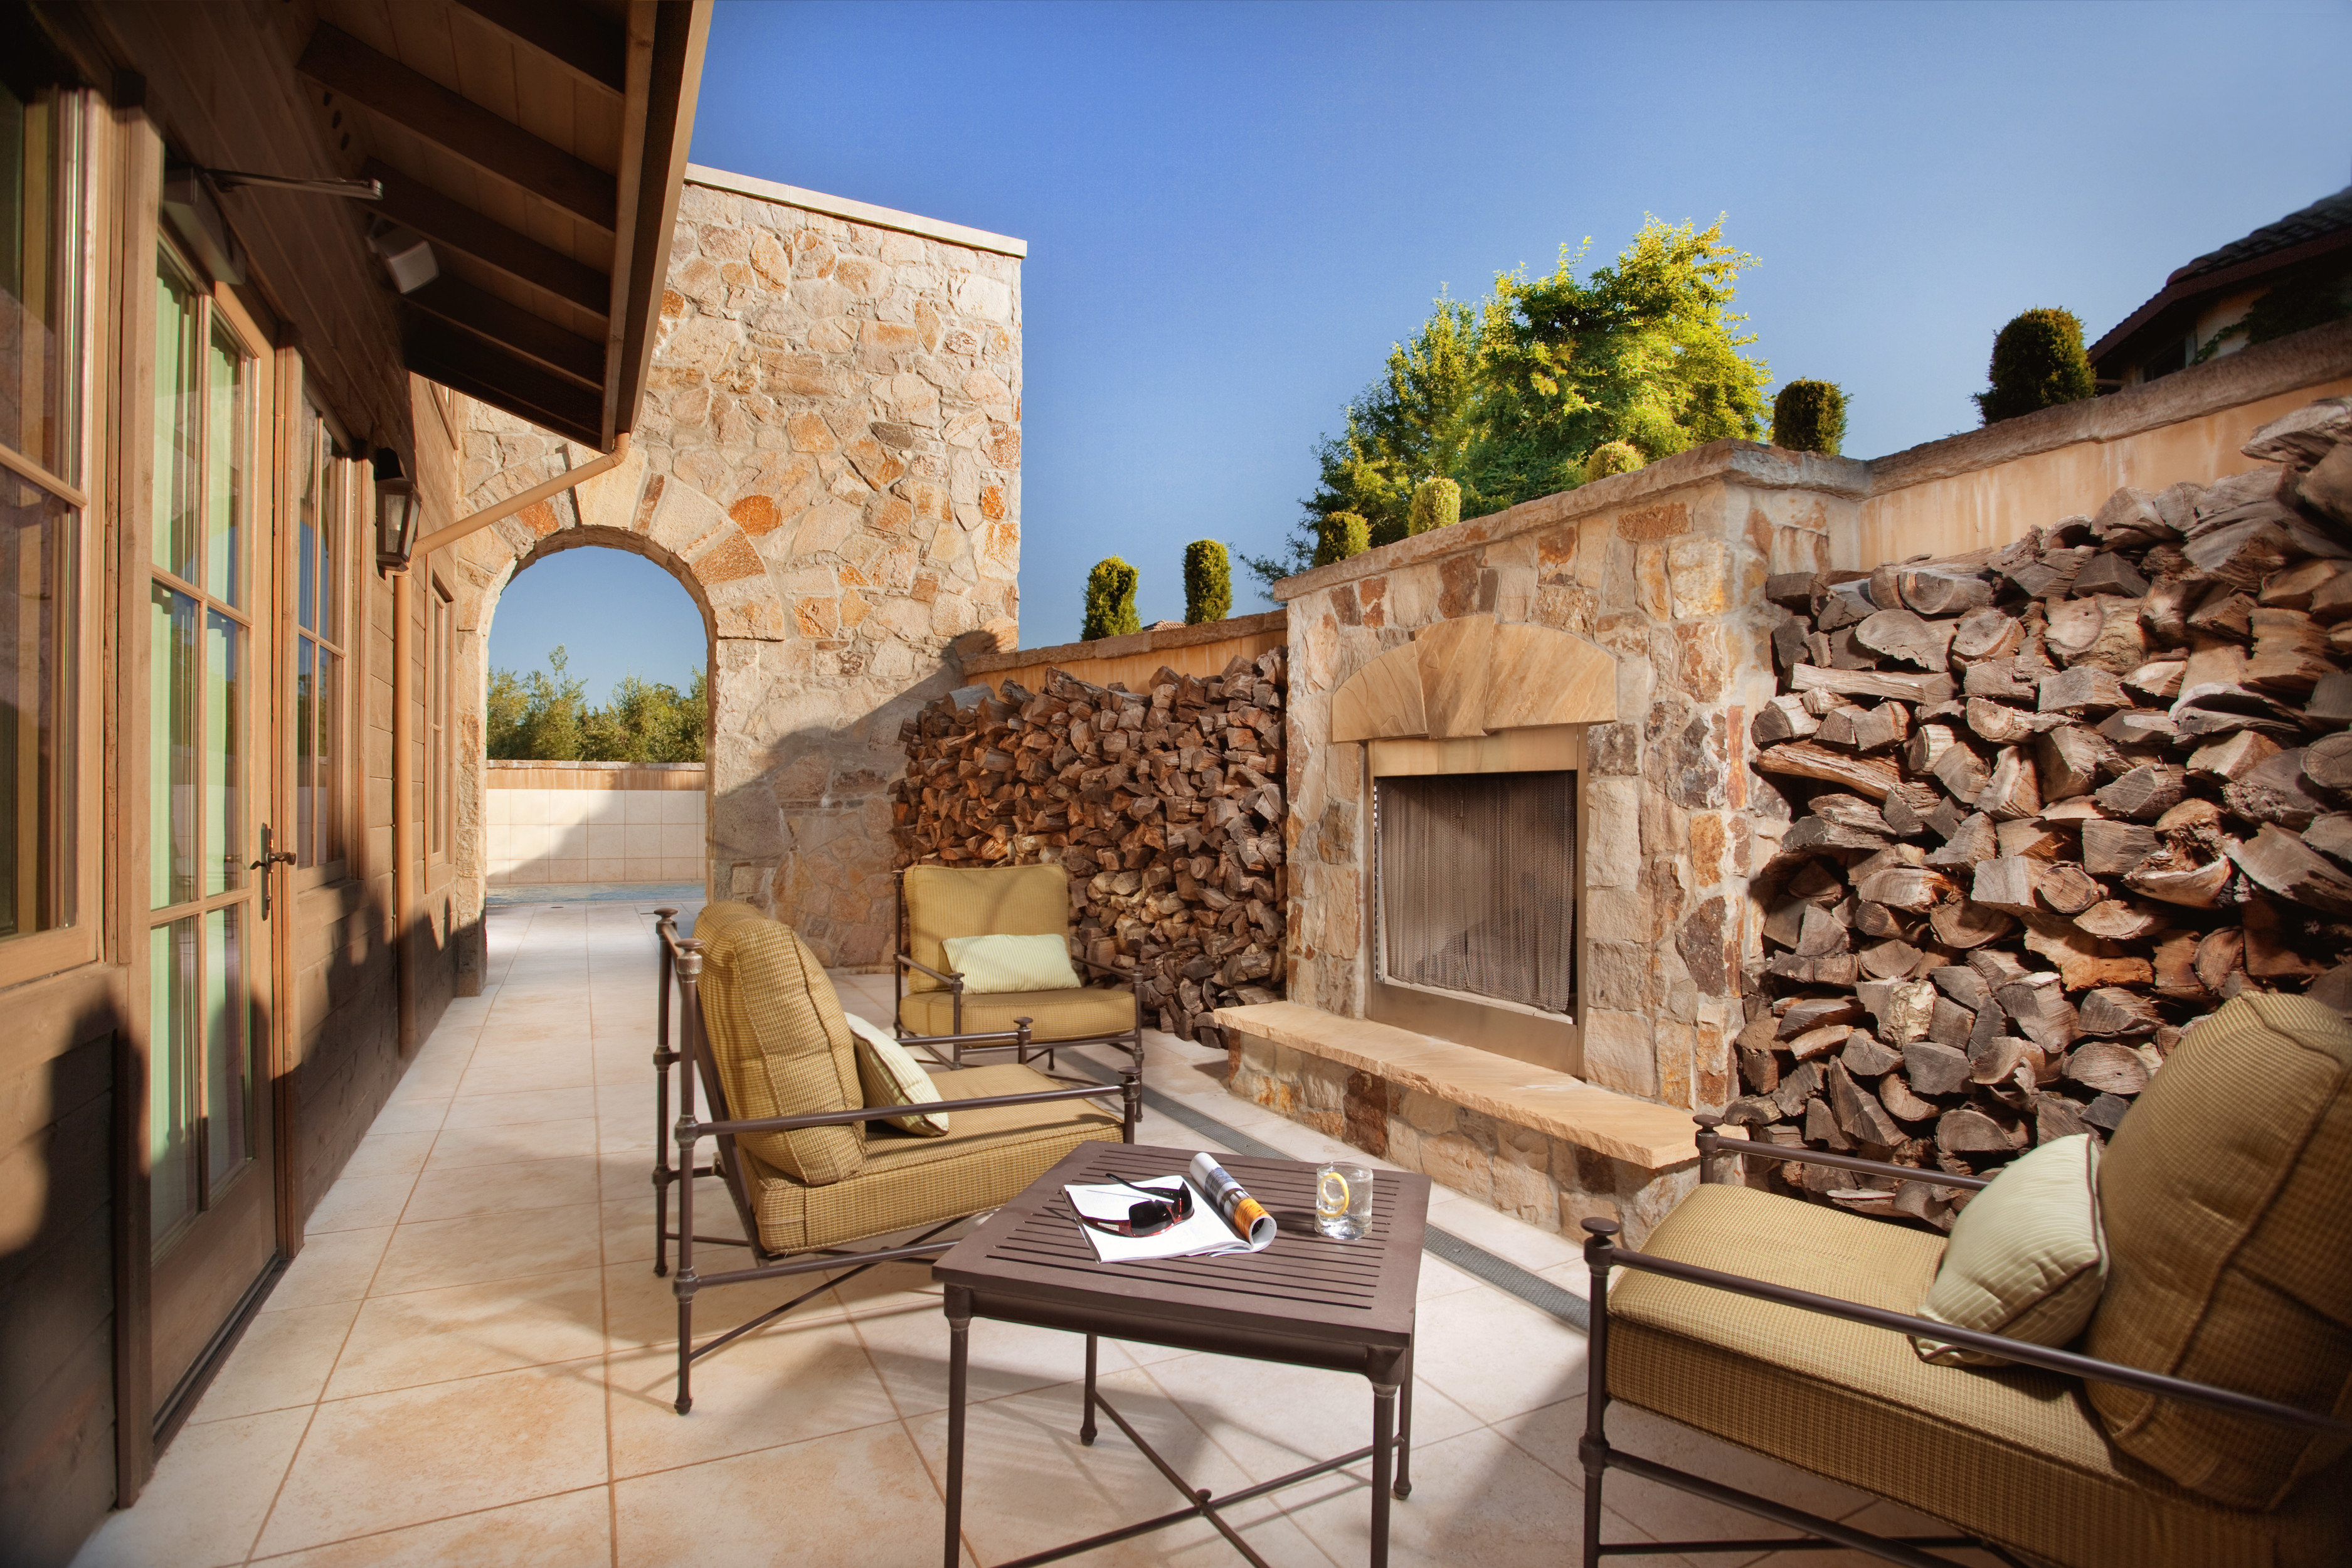 Lounge Luxury Fireplace property stone house Architecture home Courtyard brick Villa ancient history living room